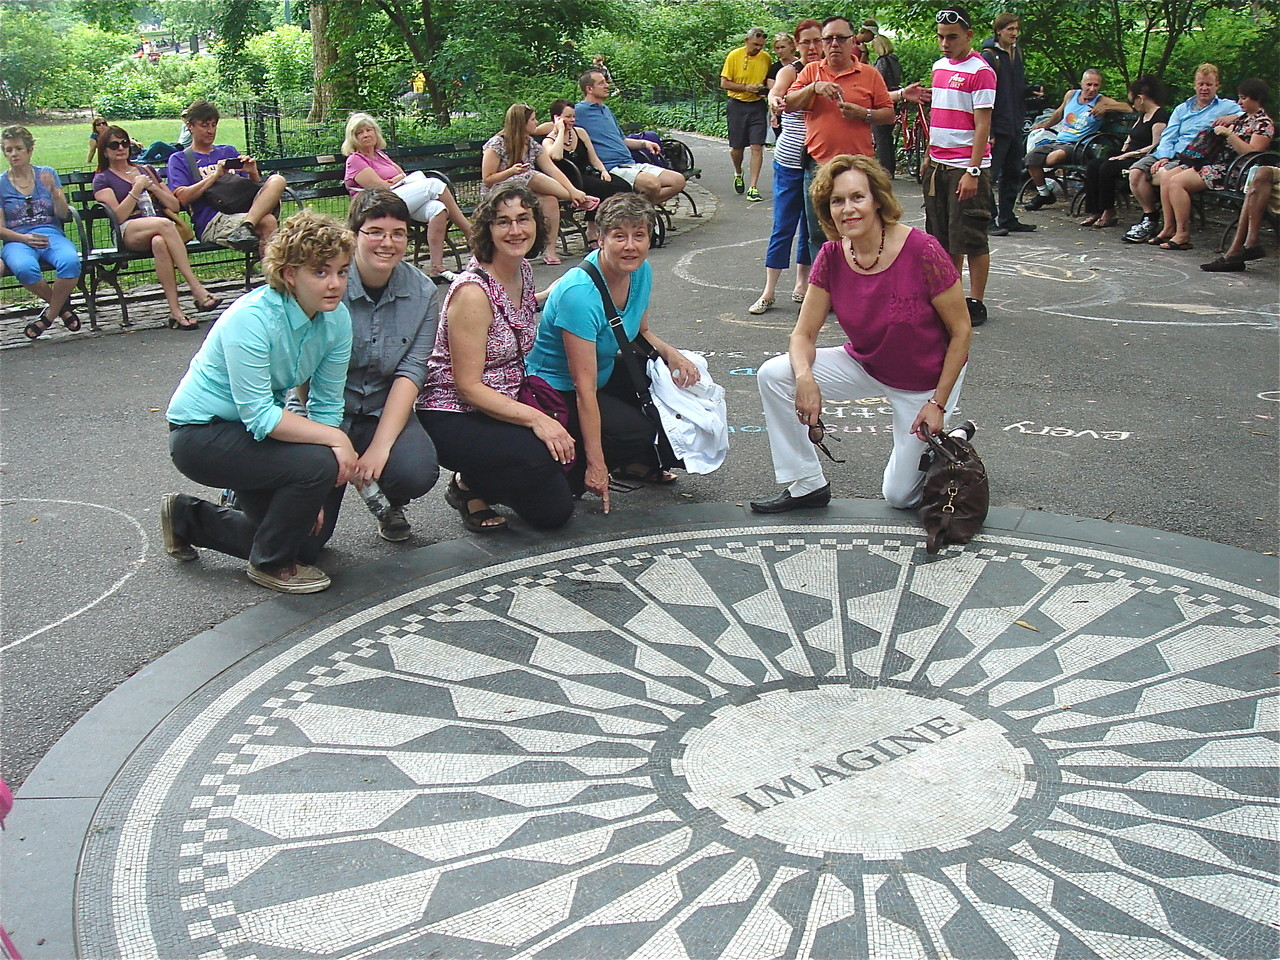 Strawberry Fields, Central Park Kathleen, Emilea, Ann, Cindy & Lorraine